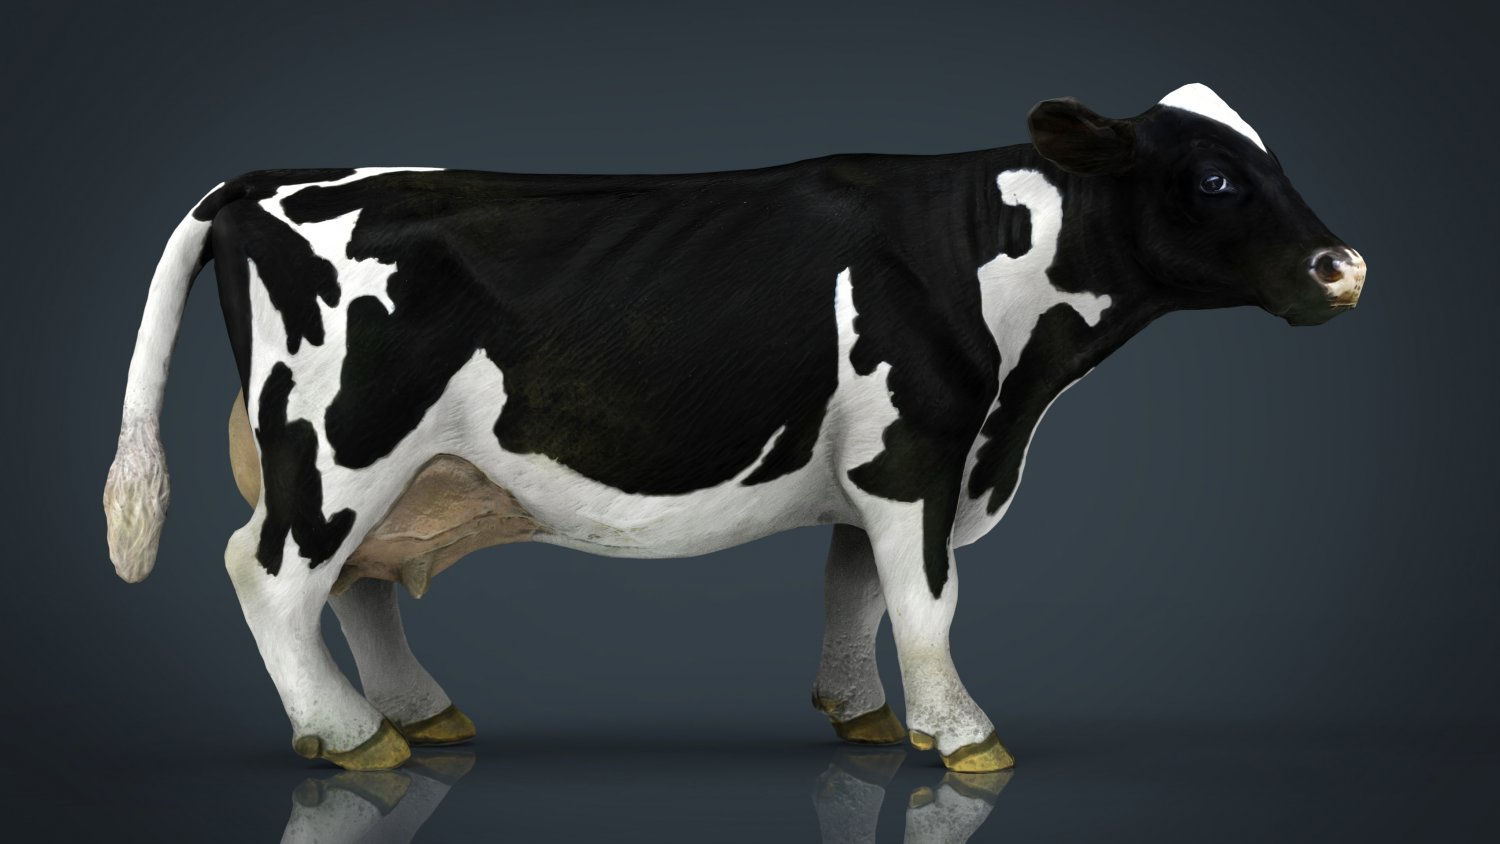 Cow 3D Models - Download Cow 3D Models 3DExport